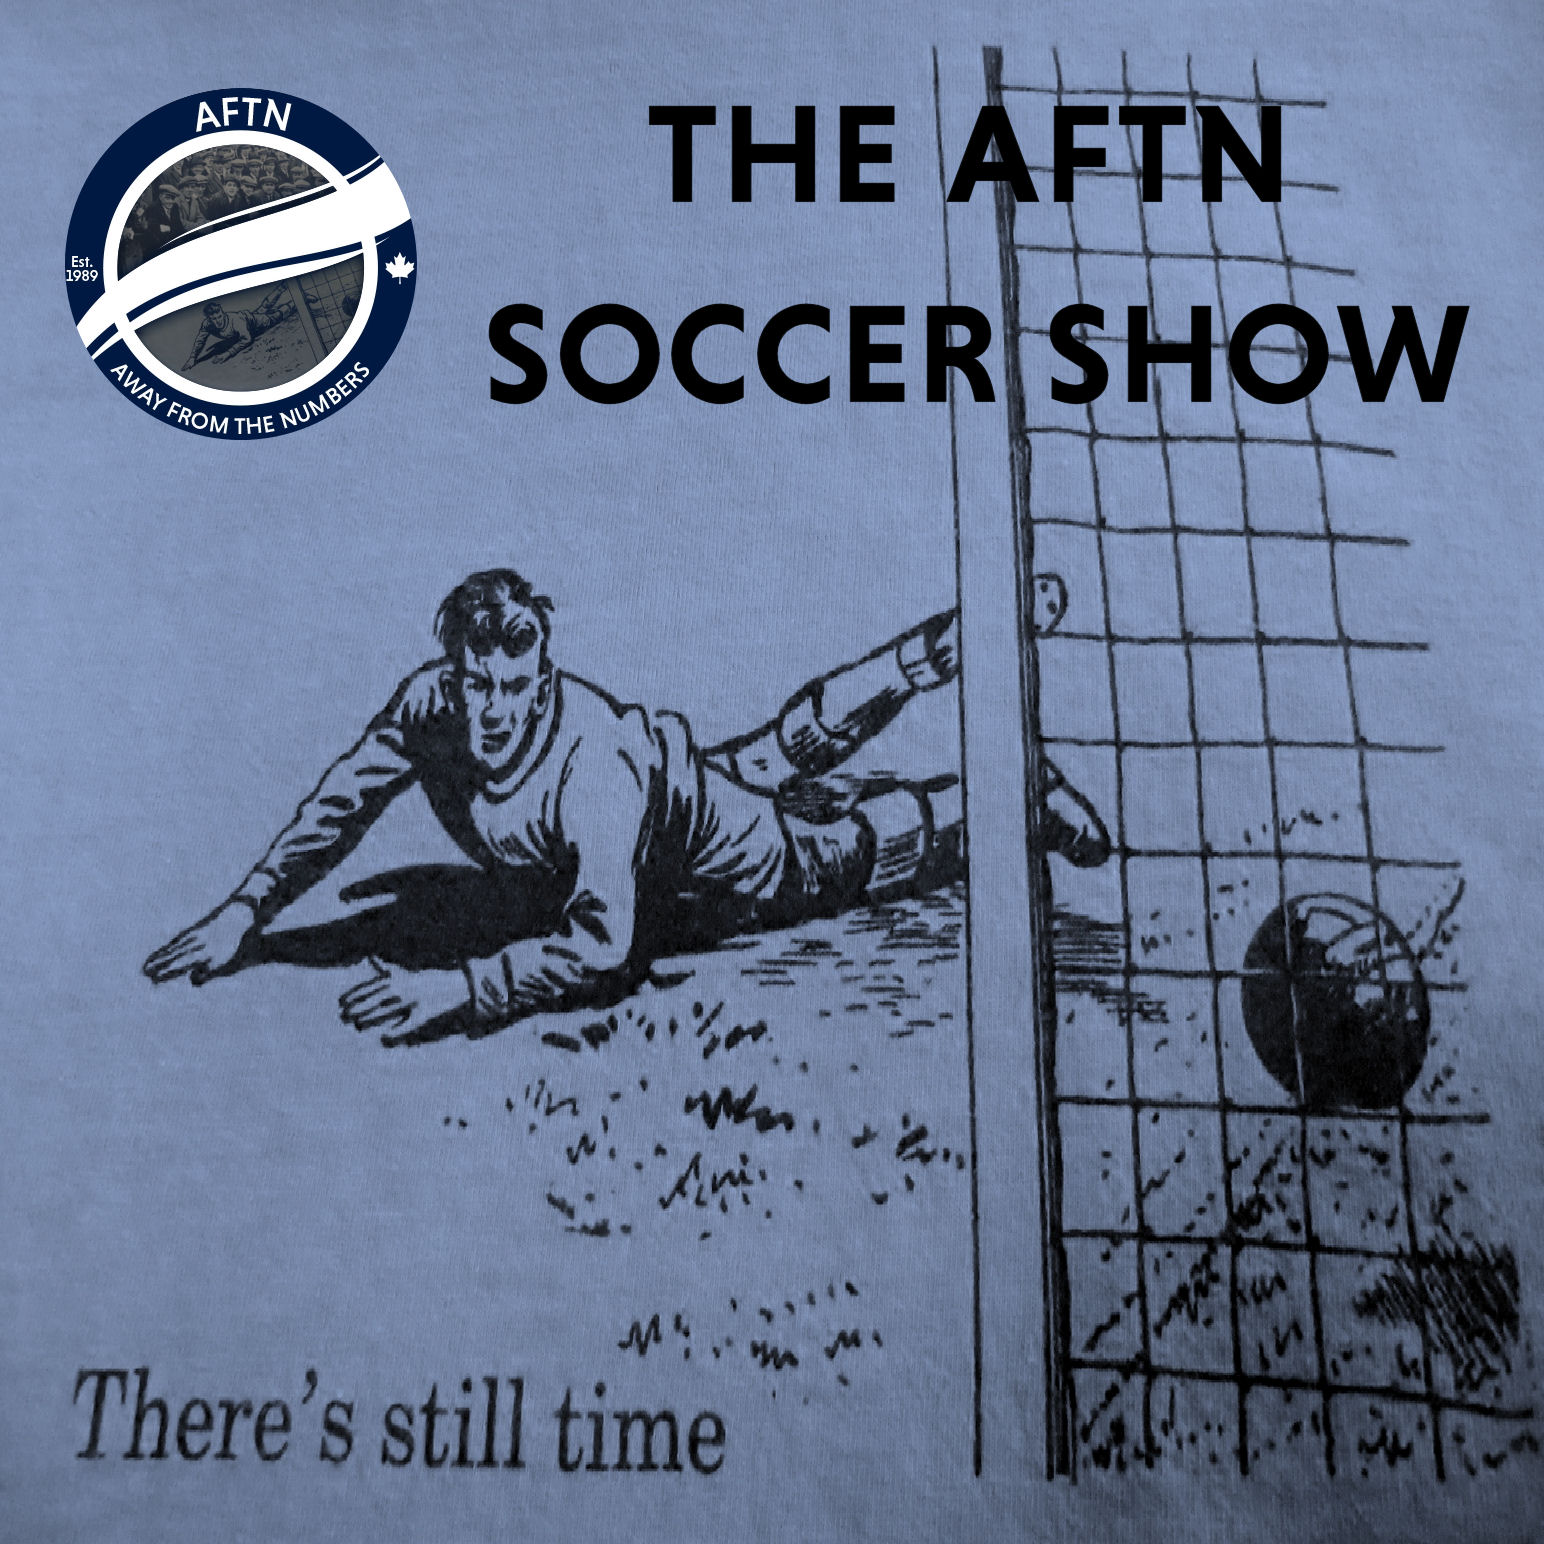 Episode 305 - The AFTN Soccer Show (It's Over Now)